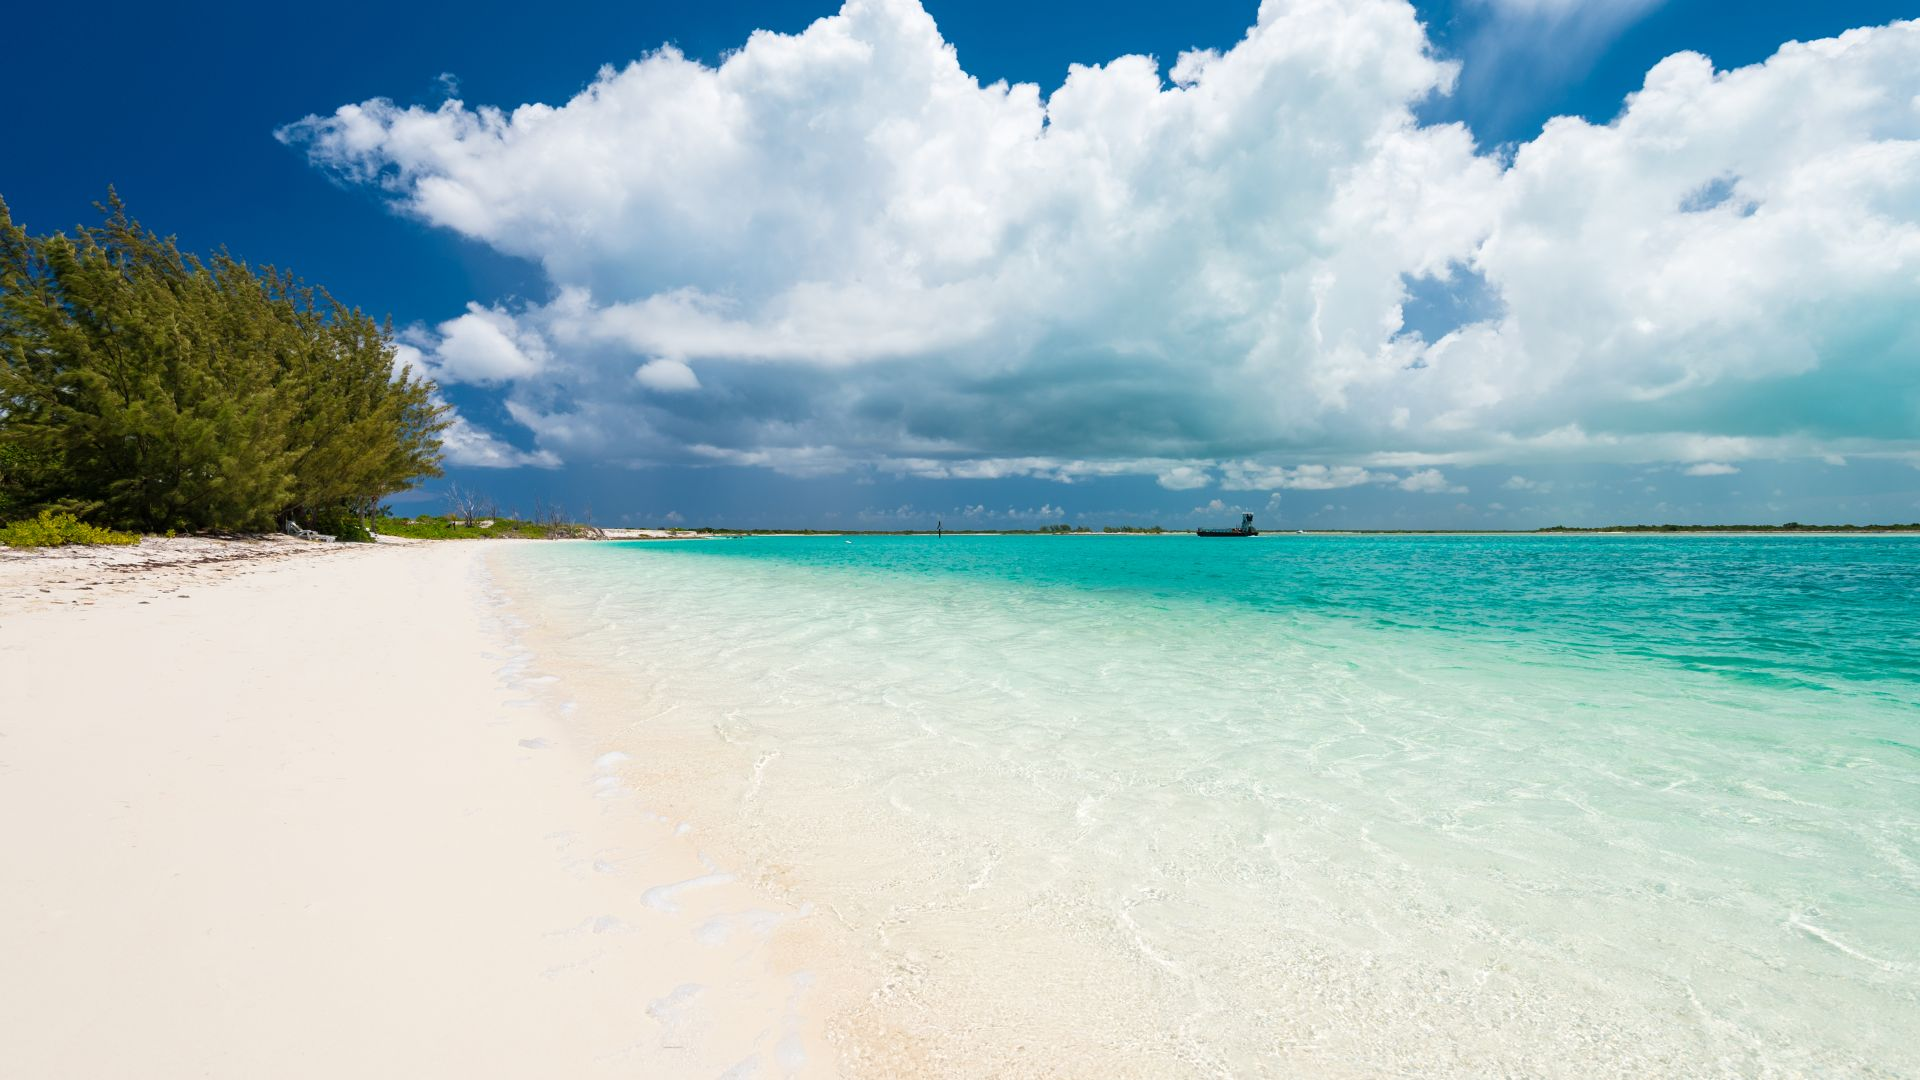 Top 11 Resorts in Grace Bay, Turks and Caicos - Trips To